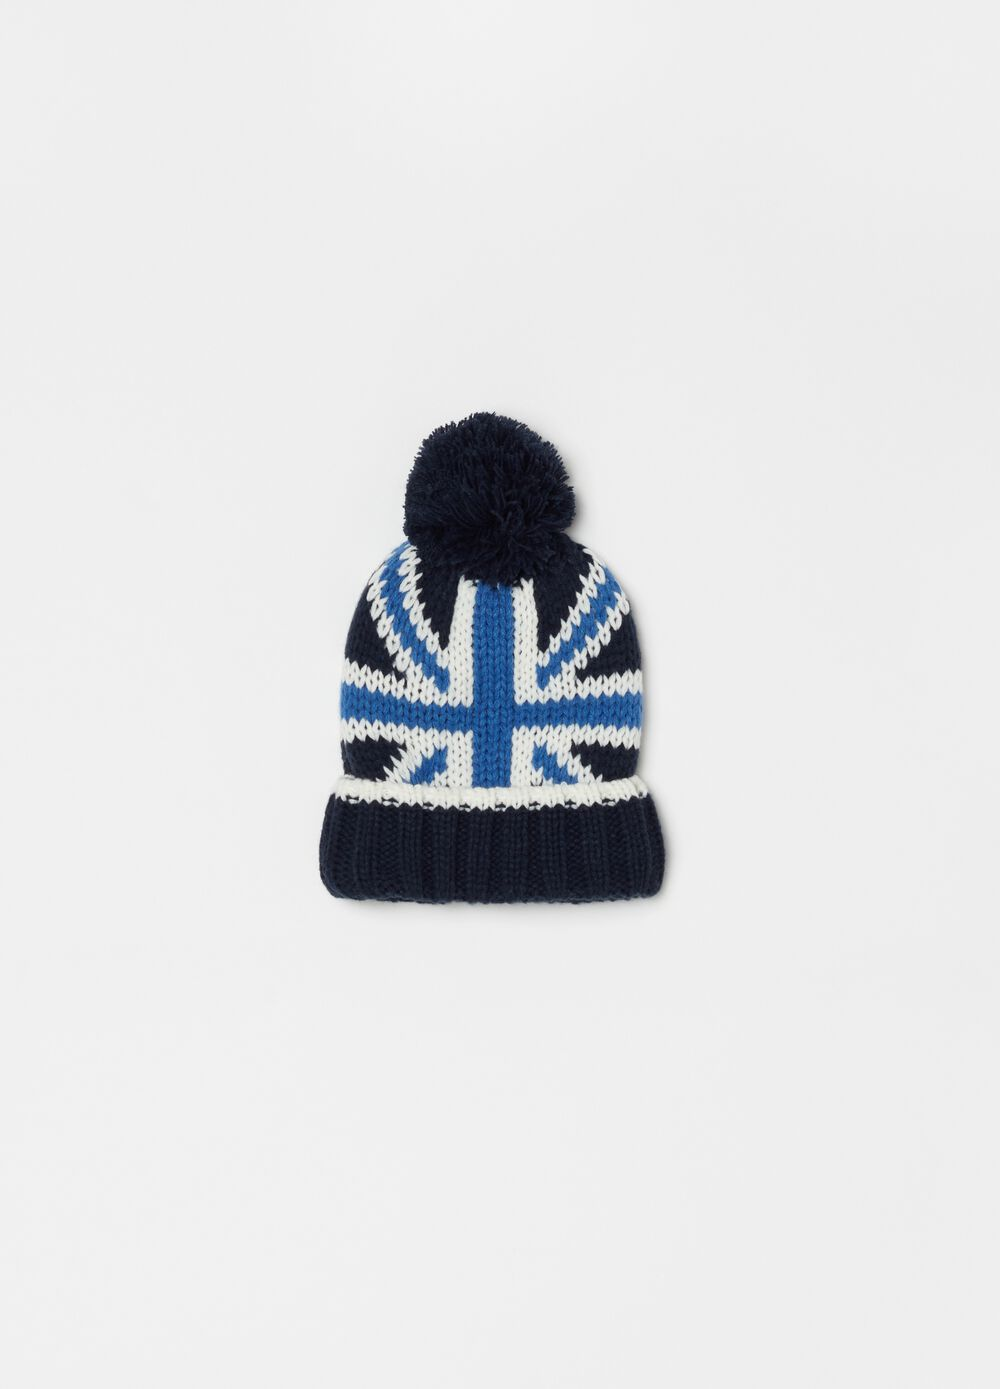 Knitted hat with English flag